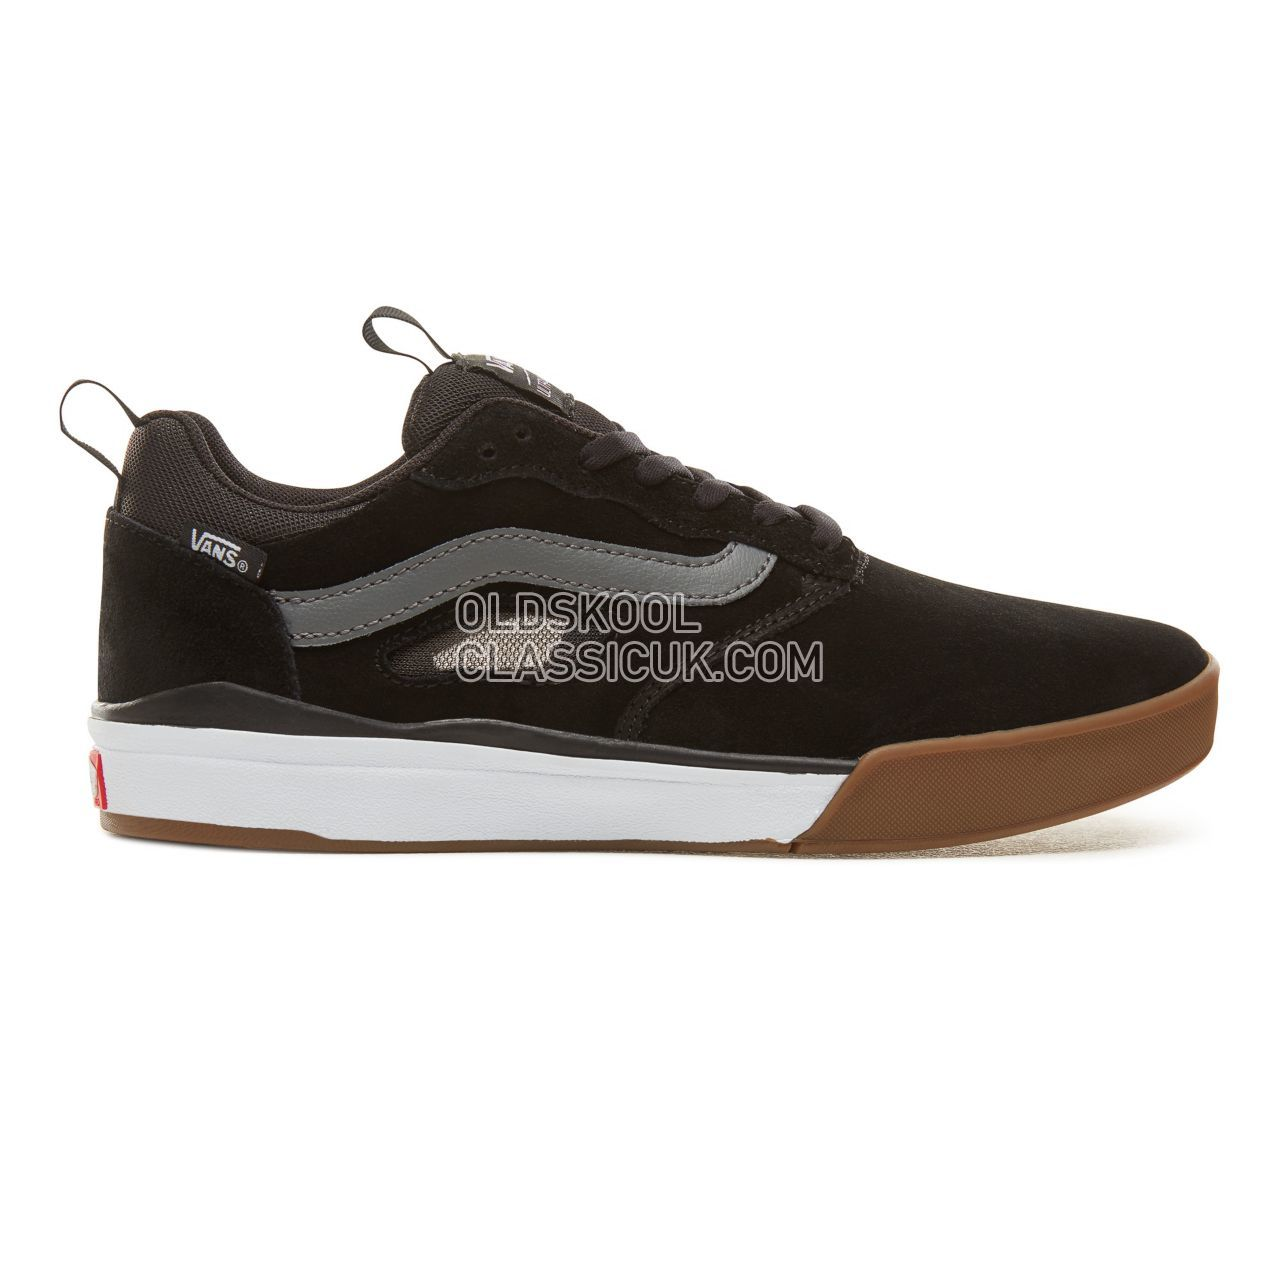 Vans UltraRange Pro Sneakers Mens Black/Gum/White VN0A3DOSB9K Shoes